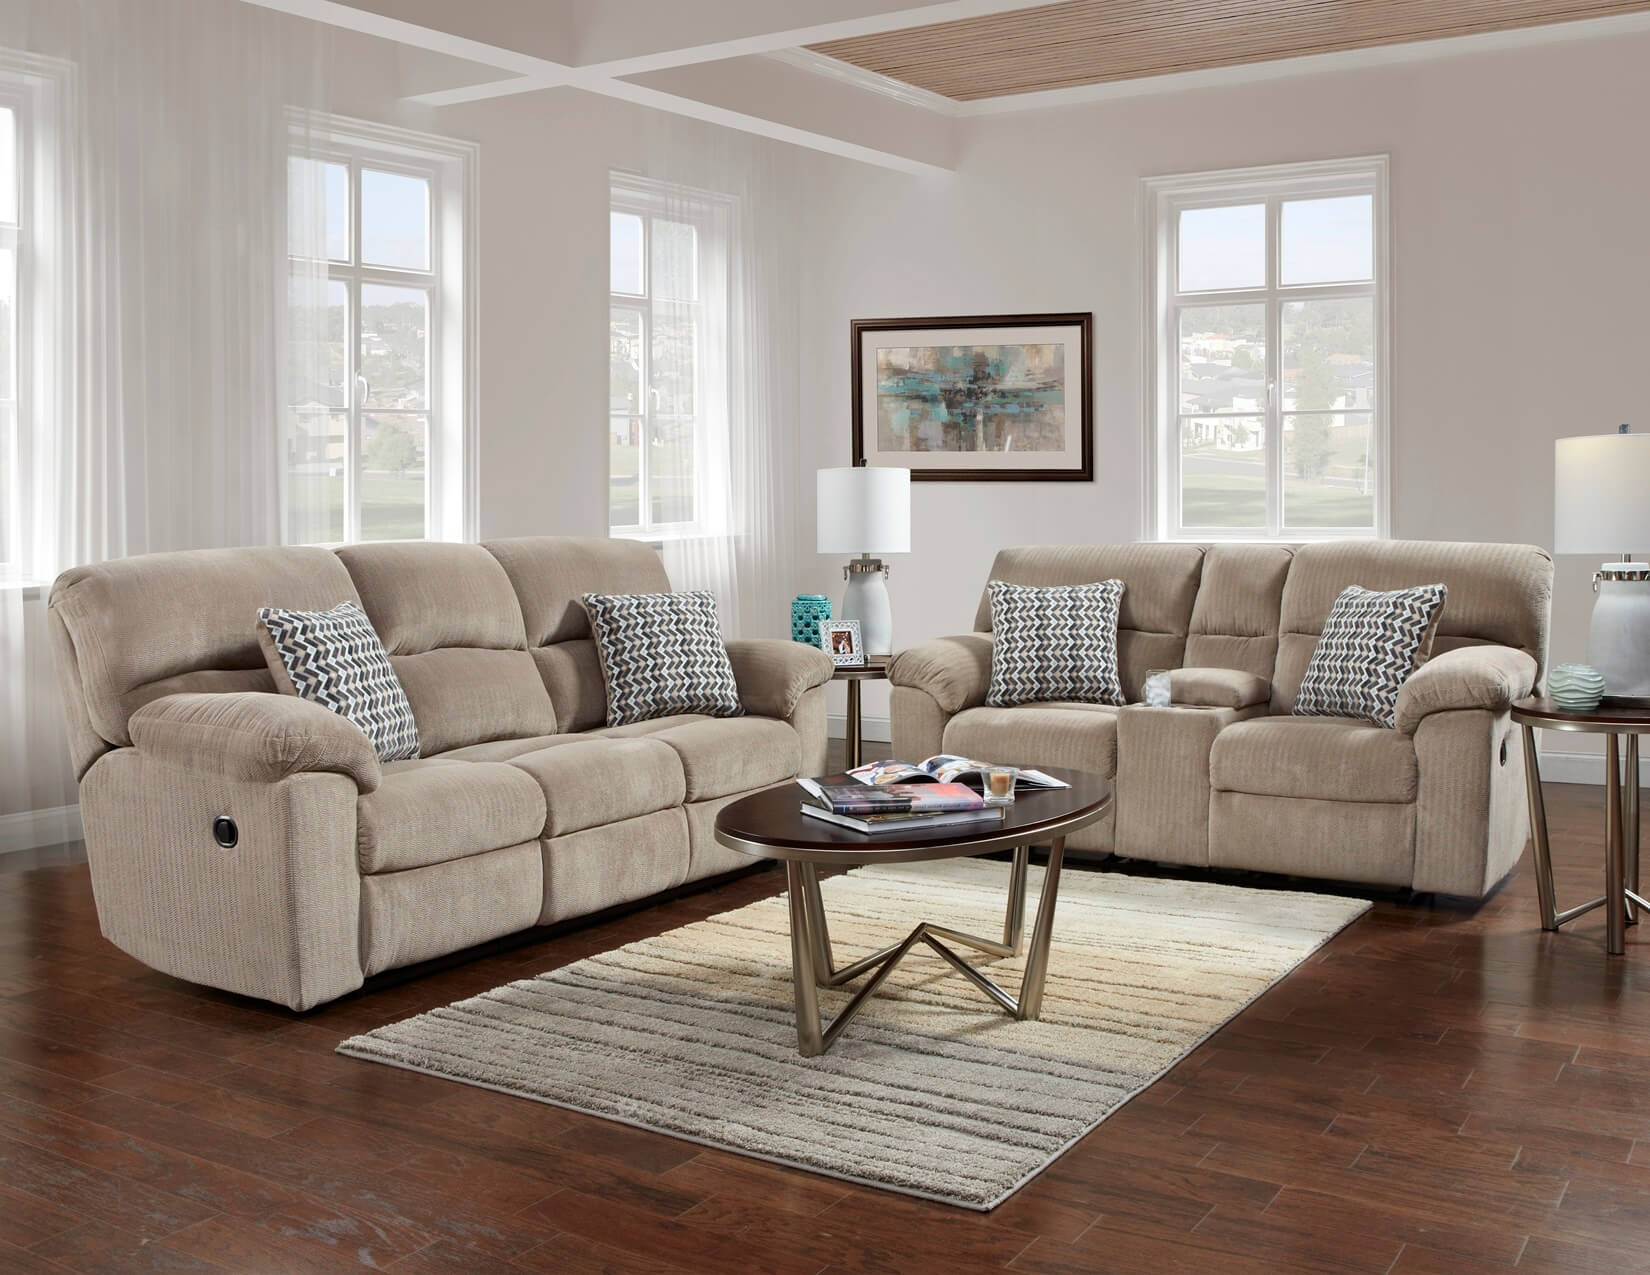 Chevron Seal Reclining Sofa And Loveseat Reclining Living Room Sets throughout 15 Some of the Coolest Ways How to Craft Reclining Sofa Living Room Set